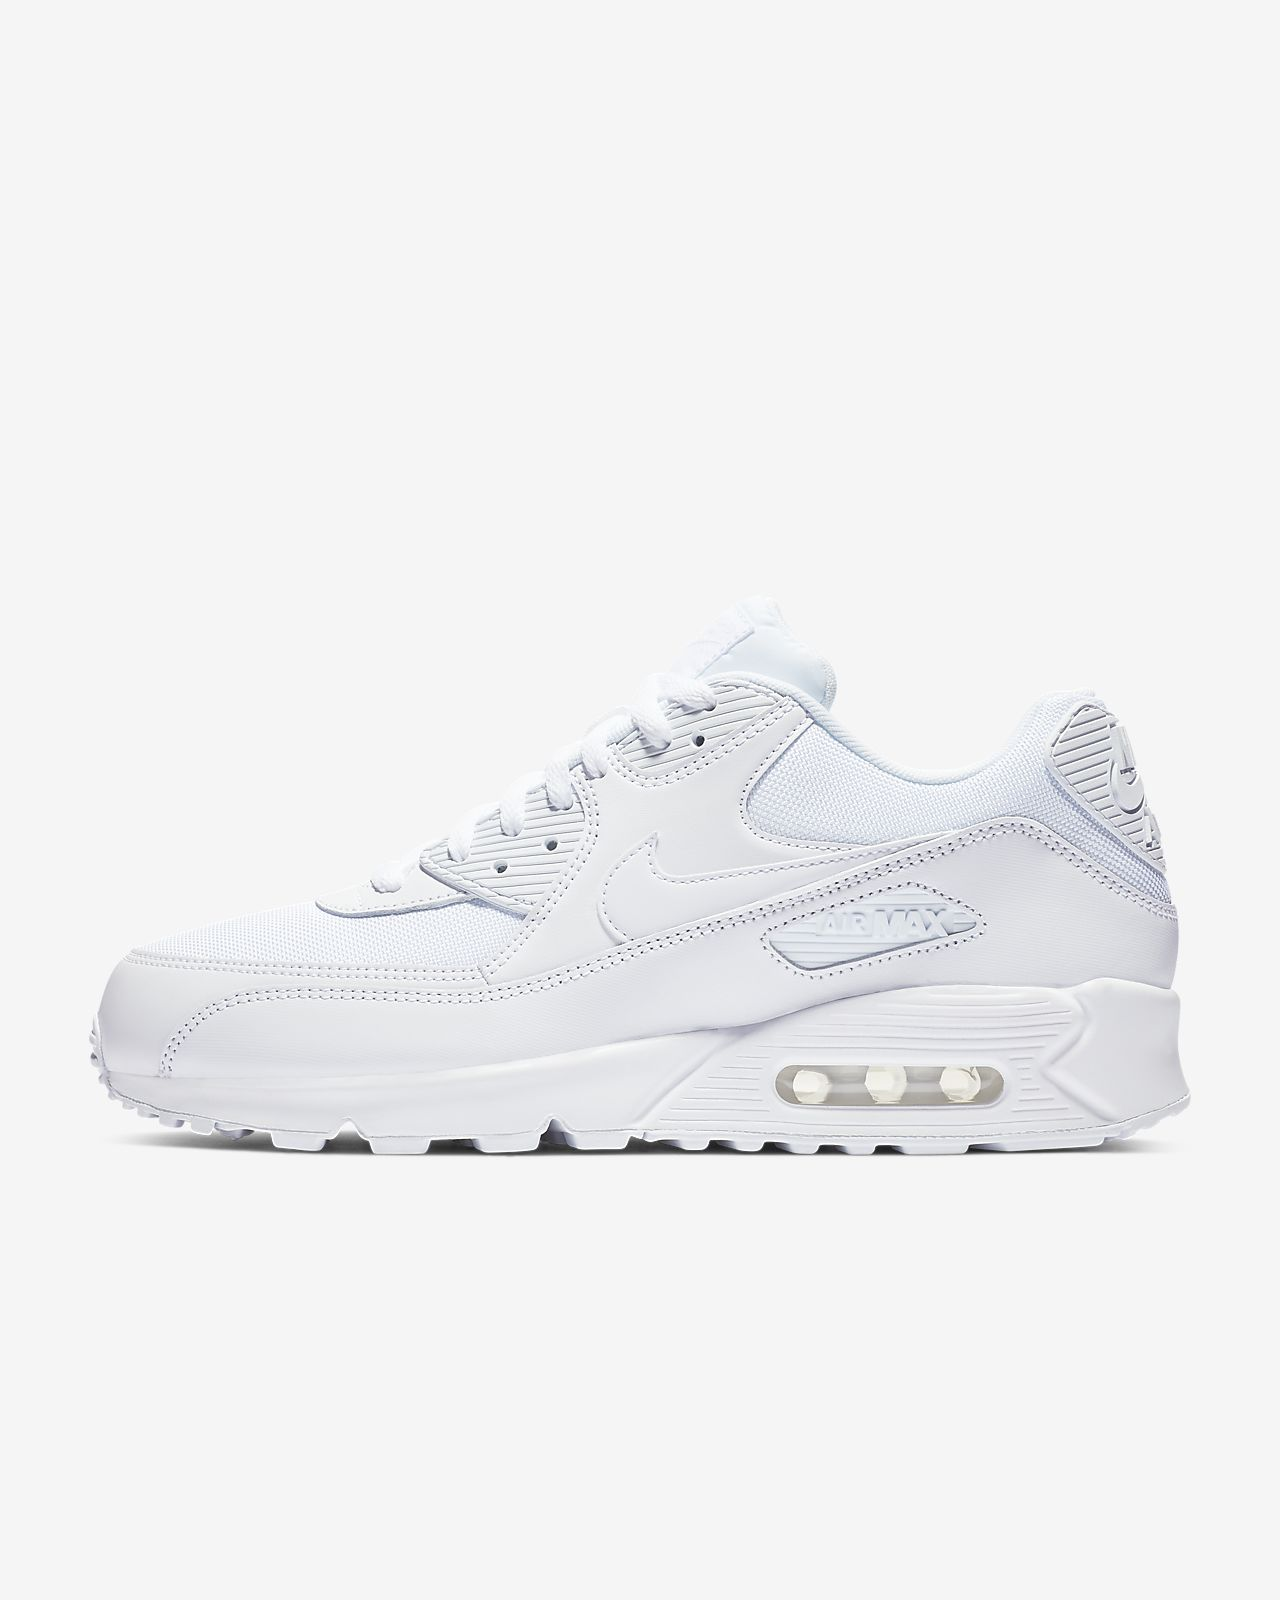 separation shoes a4de1 21e9c ... Nike Air Max 90 Essential Men s Shoe